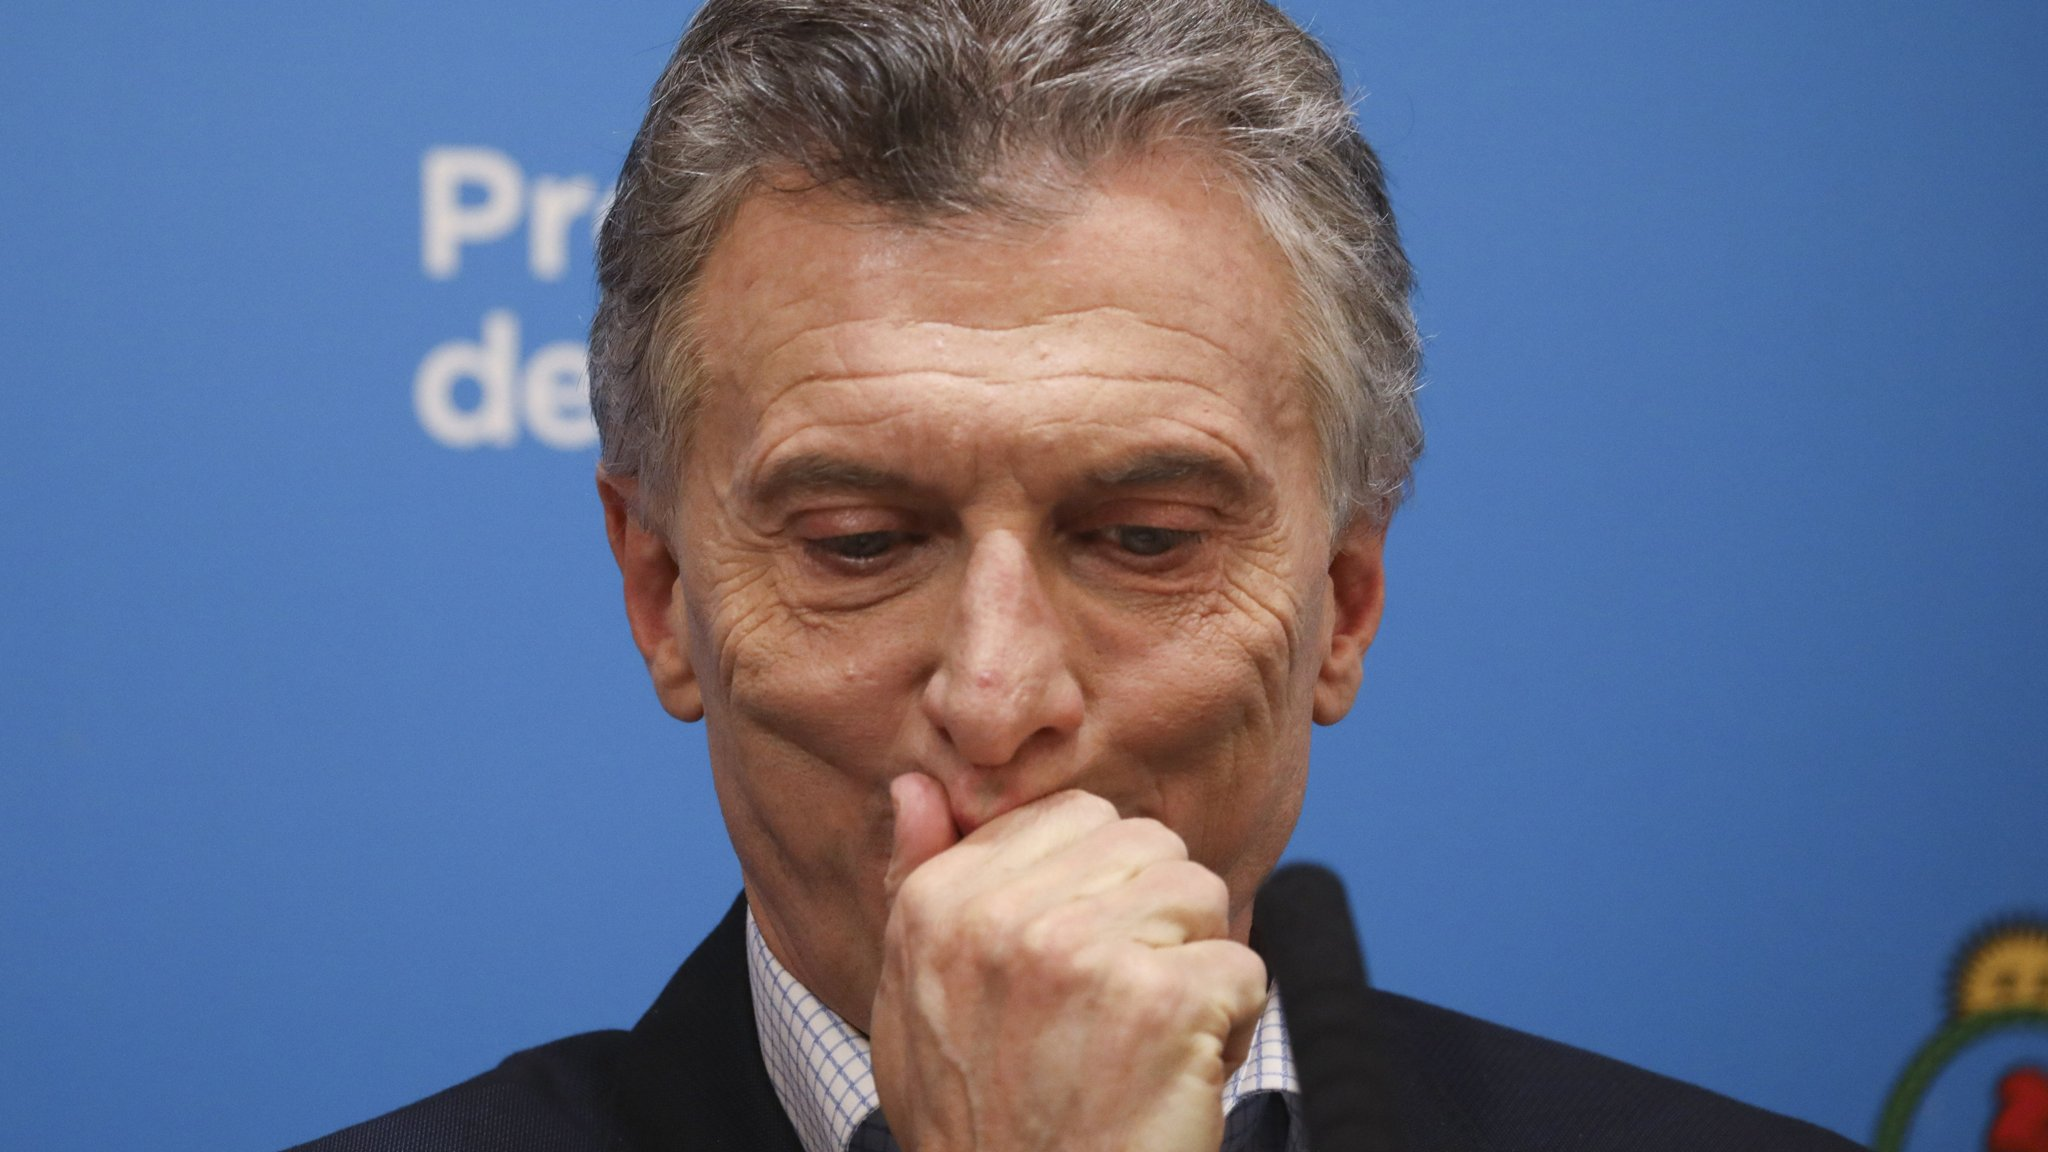 Argentina's political rivals must face up to urgent economic